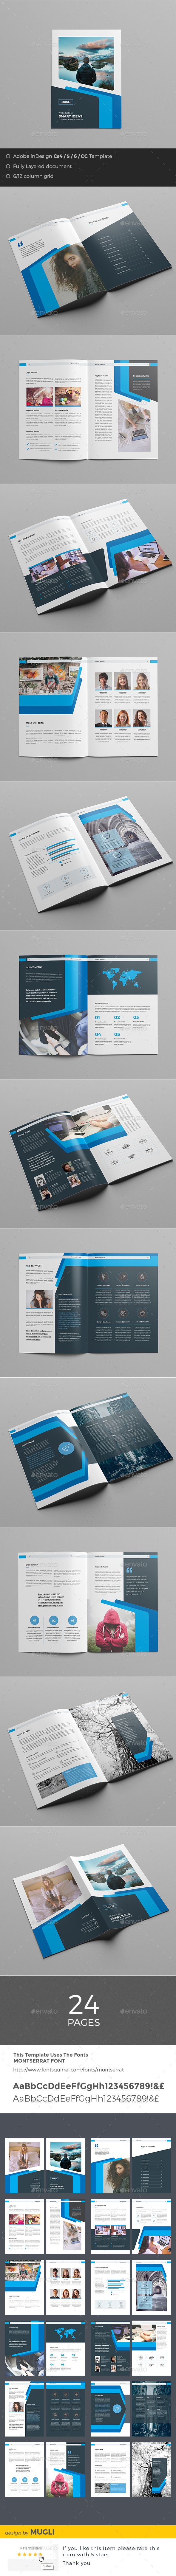 Corporate Brochure — InDesign INDD #modern #letter • Download ➝ https://graphicriver.net/item/corporate-brochure/18876400?ref=pxcr